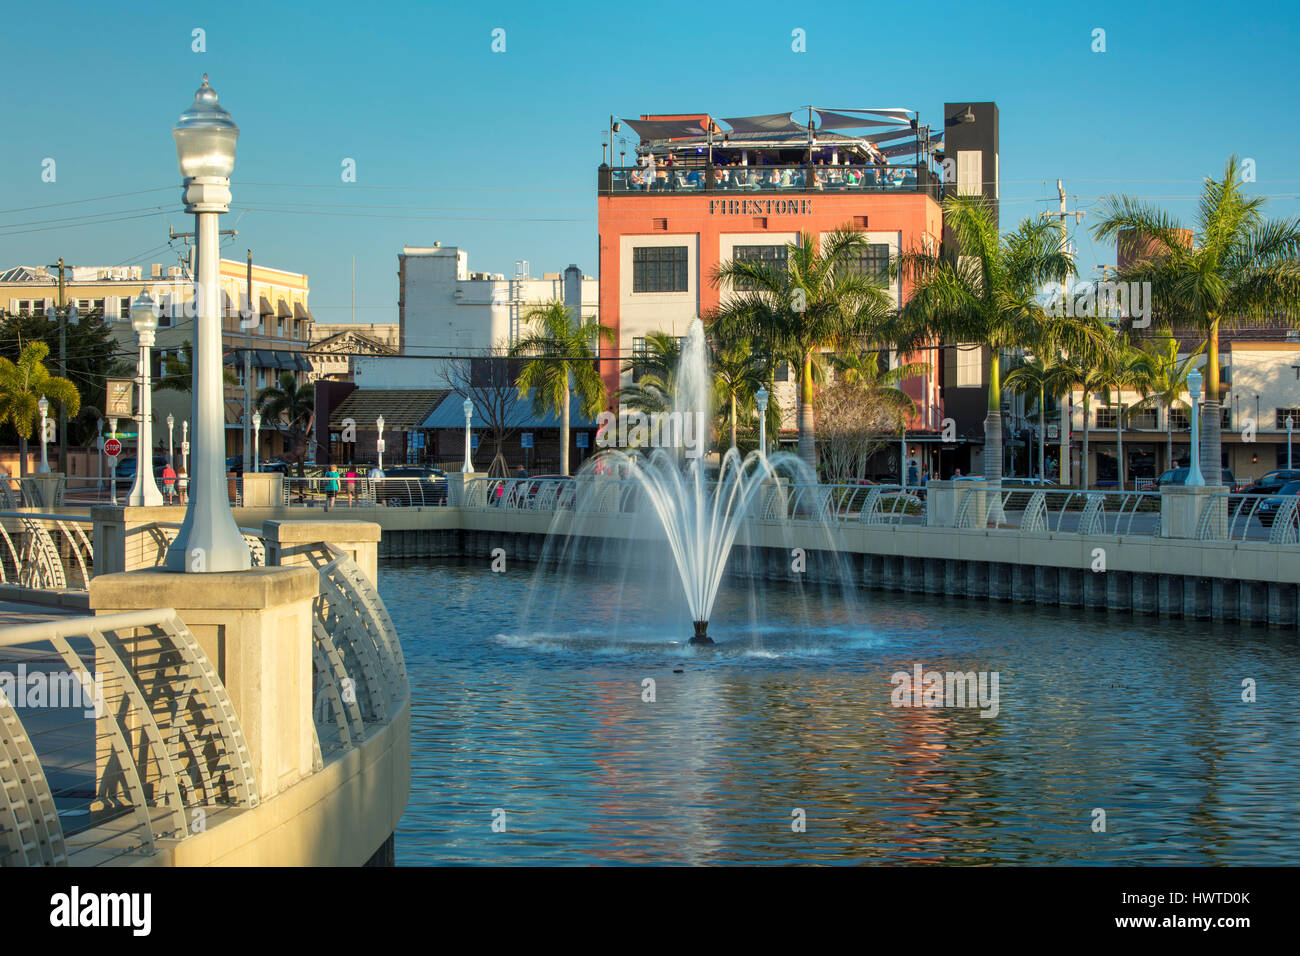 Harborside view of The Firestone Grille, Martini Bar & Sky Bar and buildings of downtown Ft Myers, Florida, - Stock Image